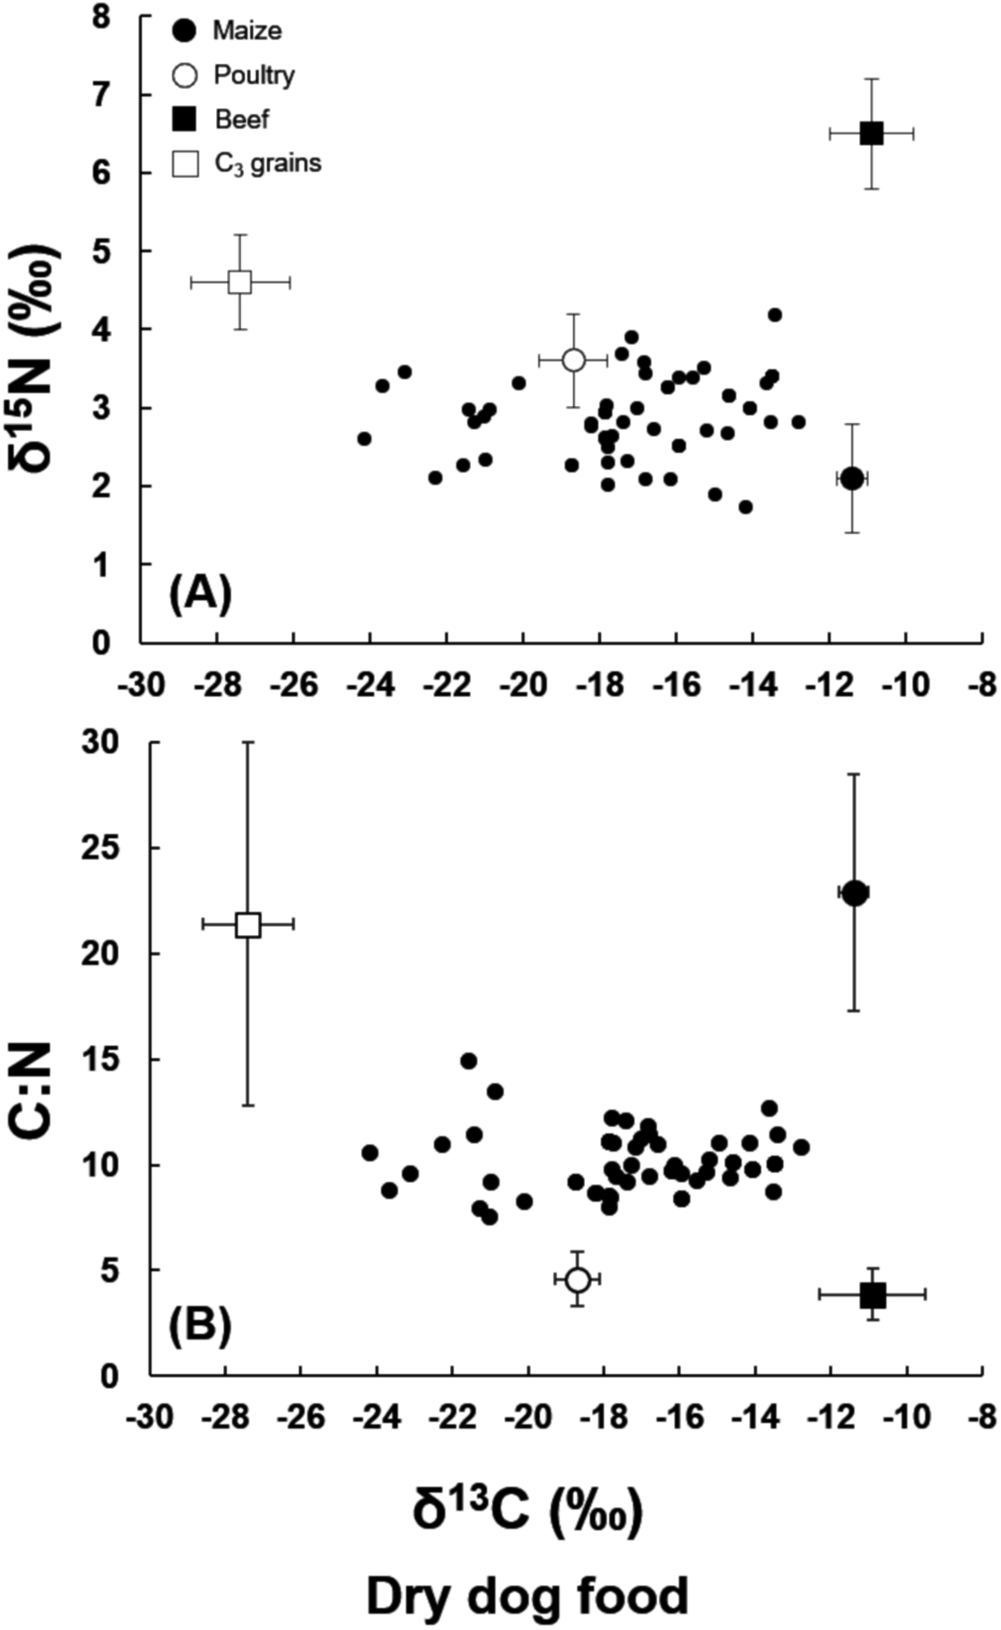 Carbon and nitrogen isotopic composition of commercial dog food in